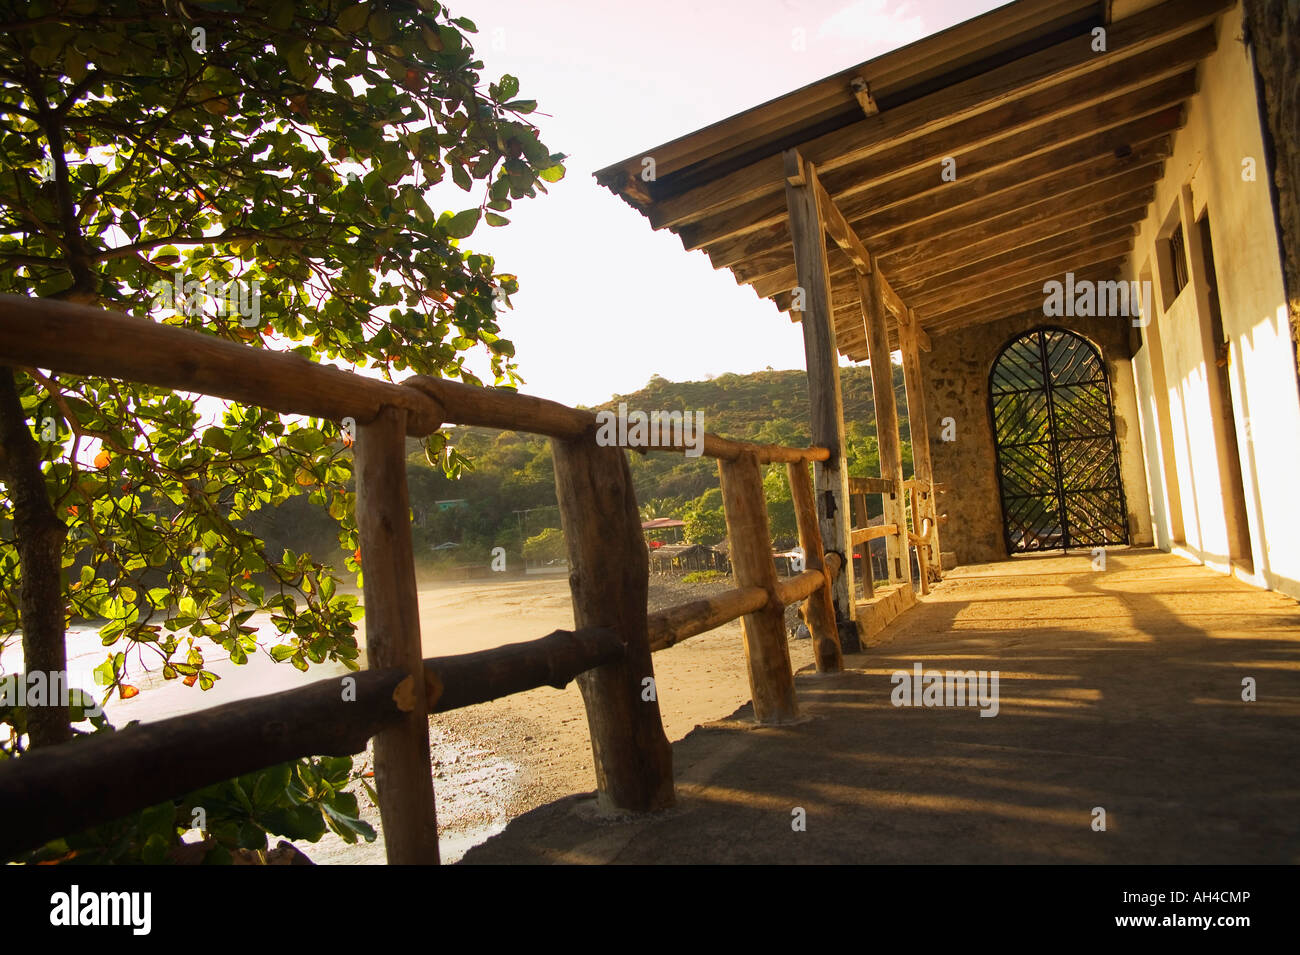 Porch facing water - Stock Image